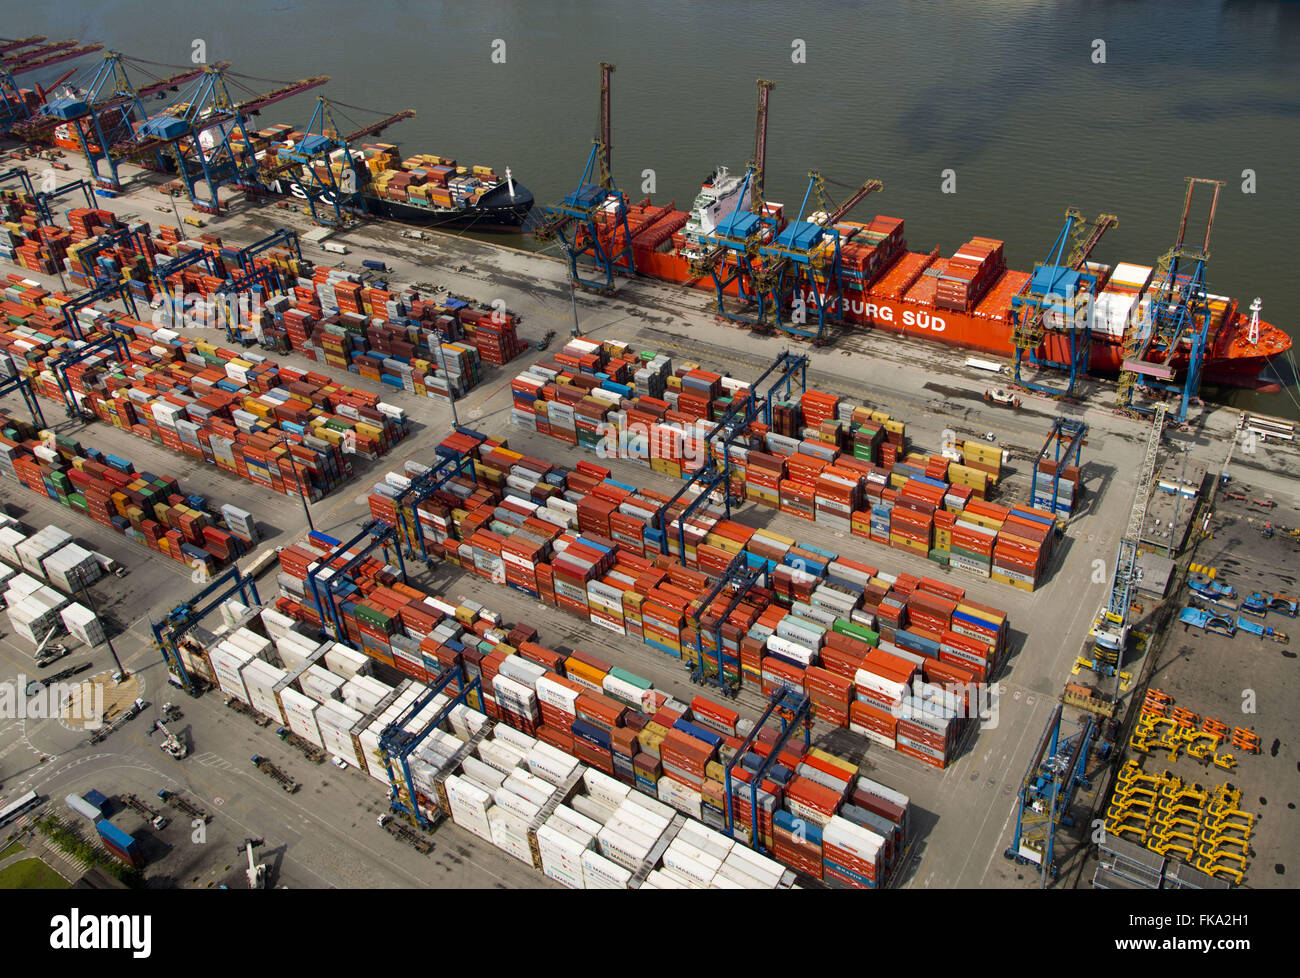 TECON - Terminal containers on the left bank of the Port of Santos - Stock Image